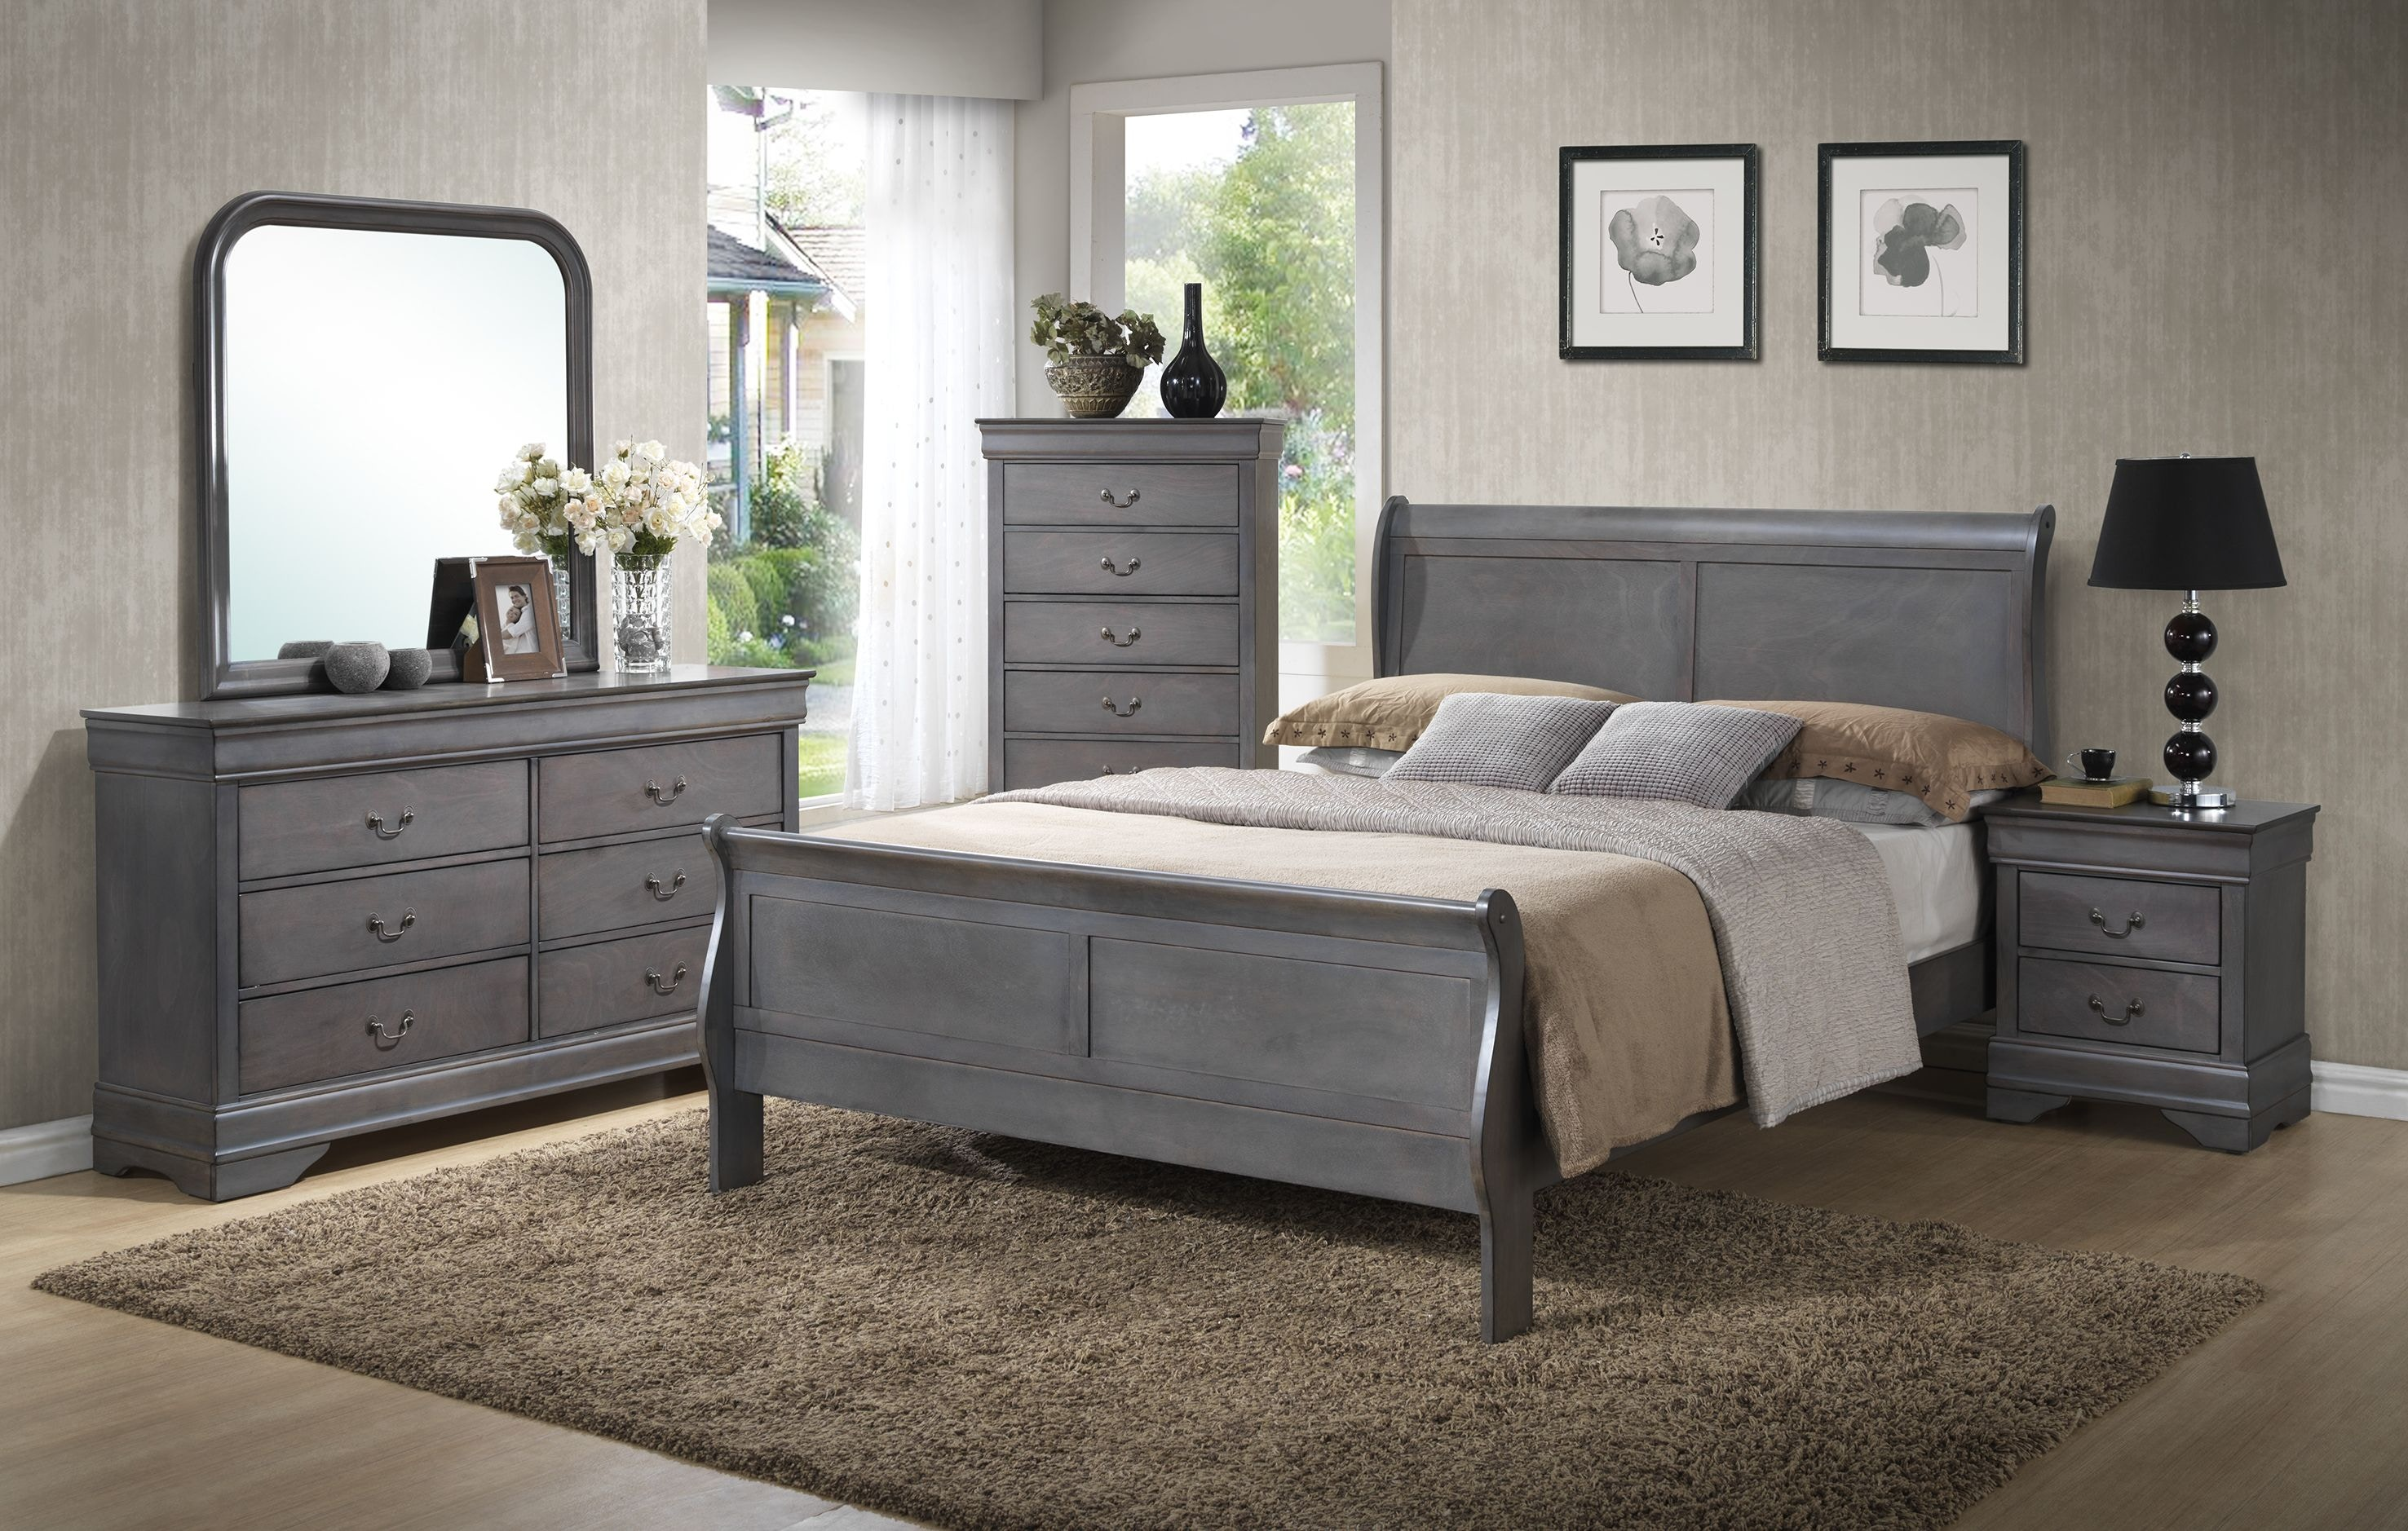 Charmant Lifestyle Dresser, Mirror, Chest, King Sleigh Bed Set C4934K